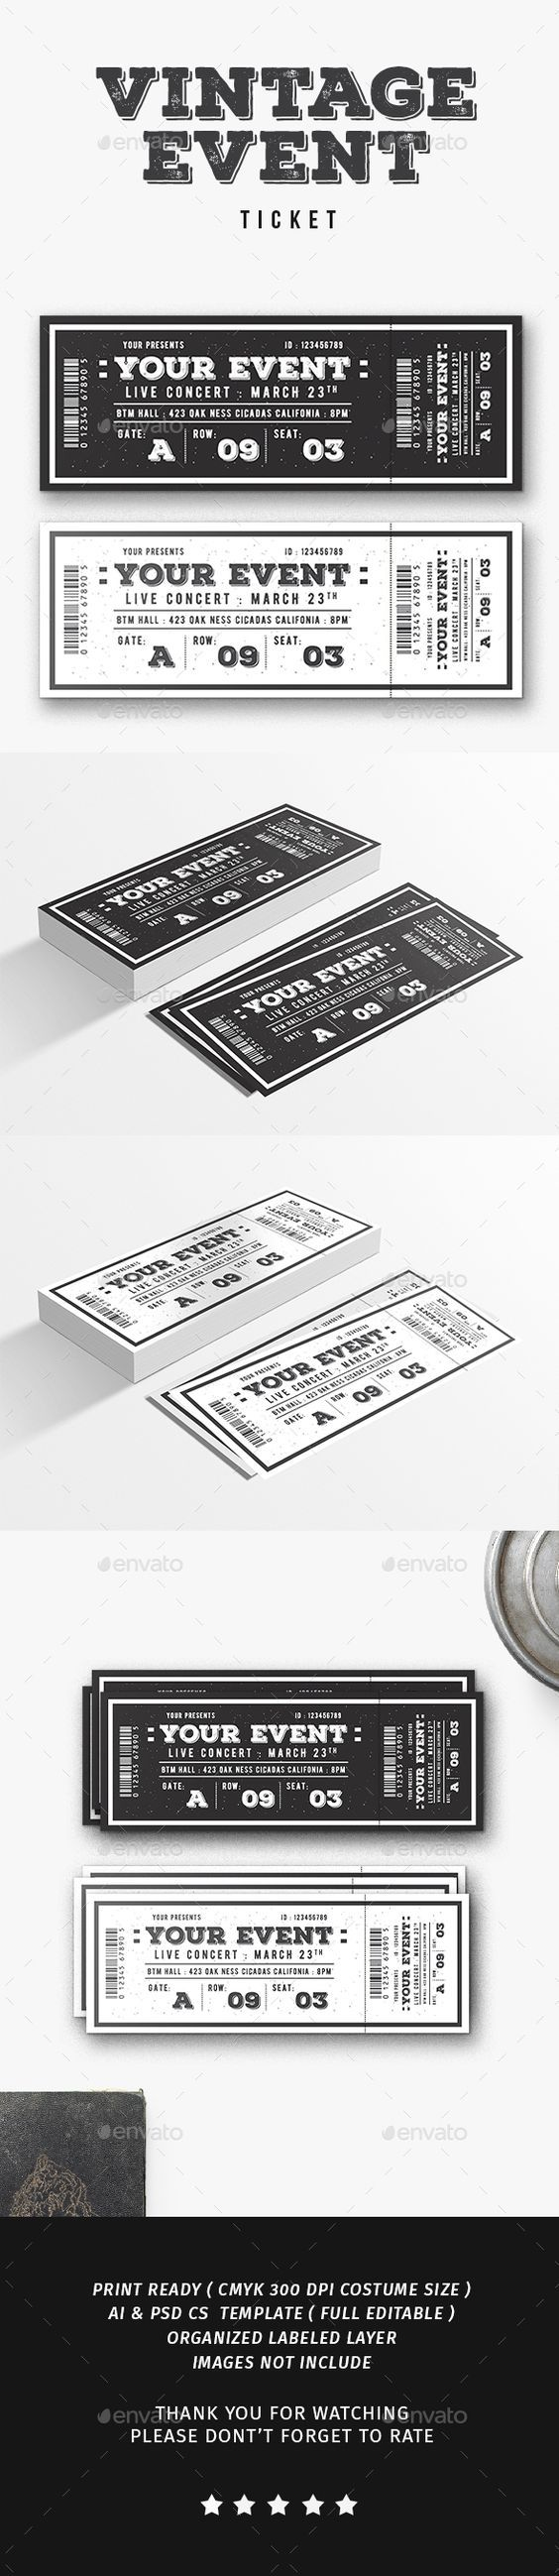 Concert Ticket Template Free Download Brilliant Vintage Event Ticket  Event Ticket